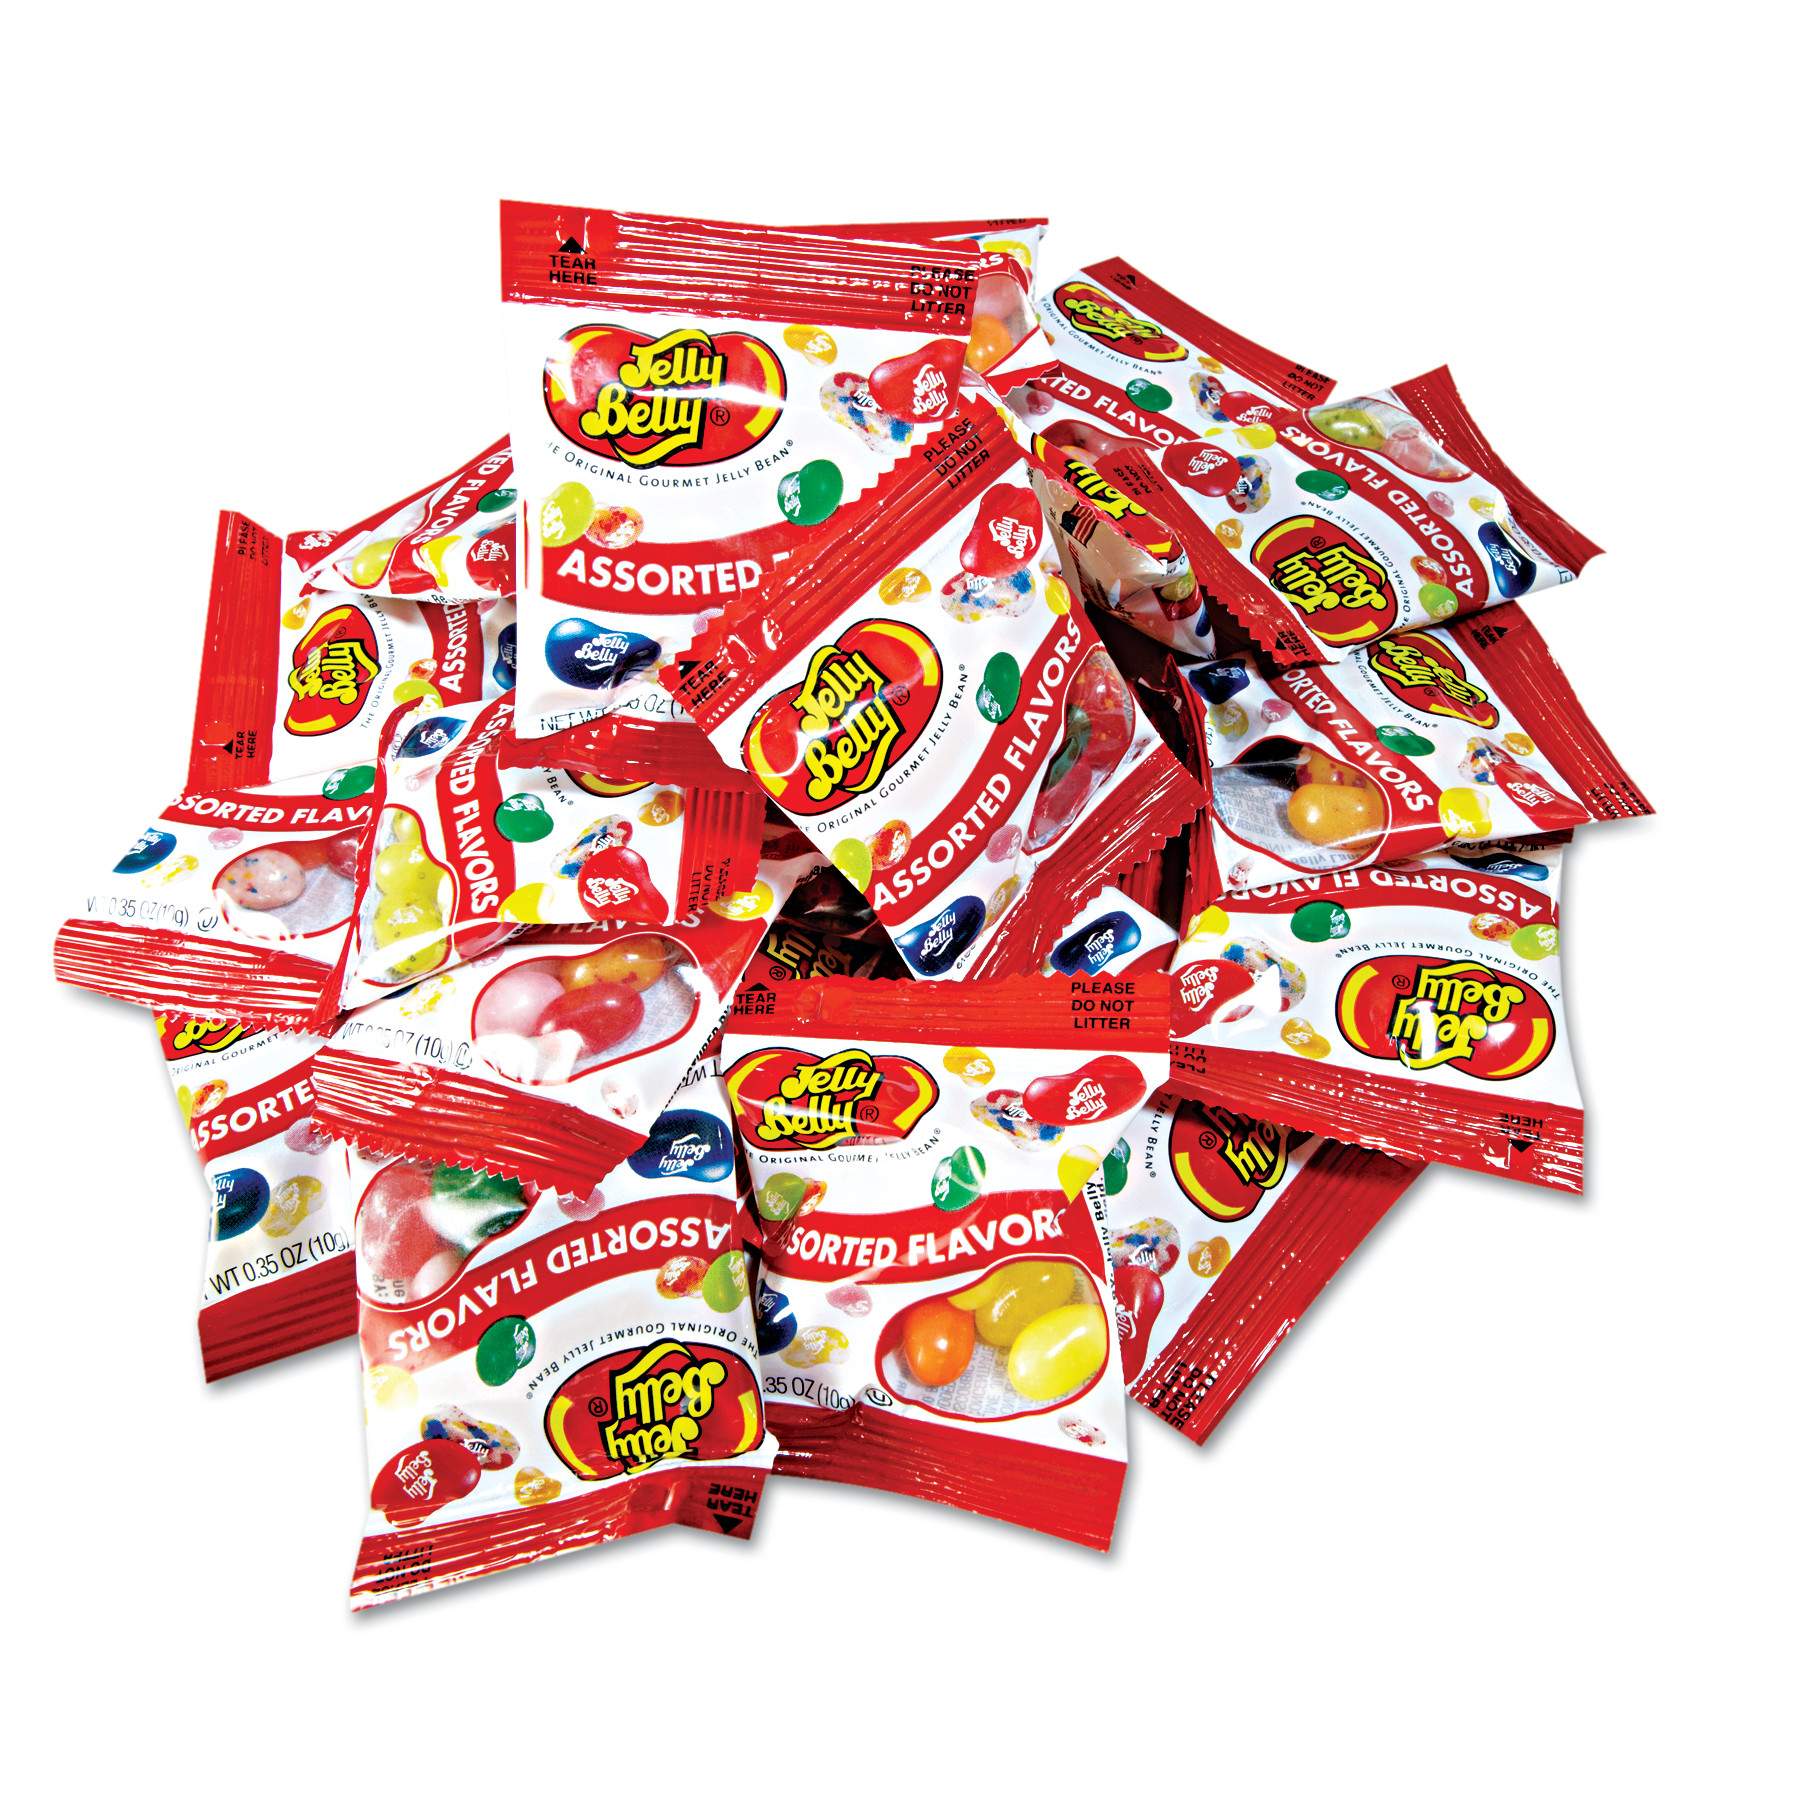 Jelly Belly, Jelly Beans, Assorted Flavors